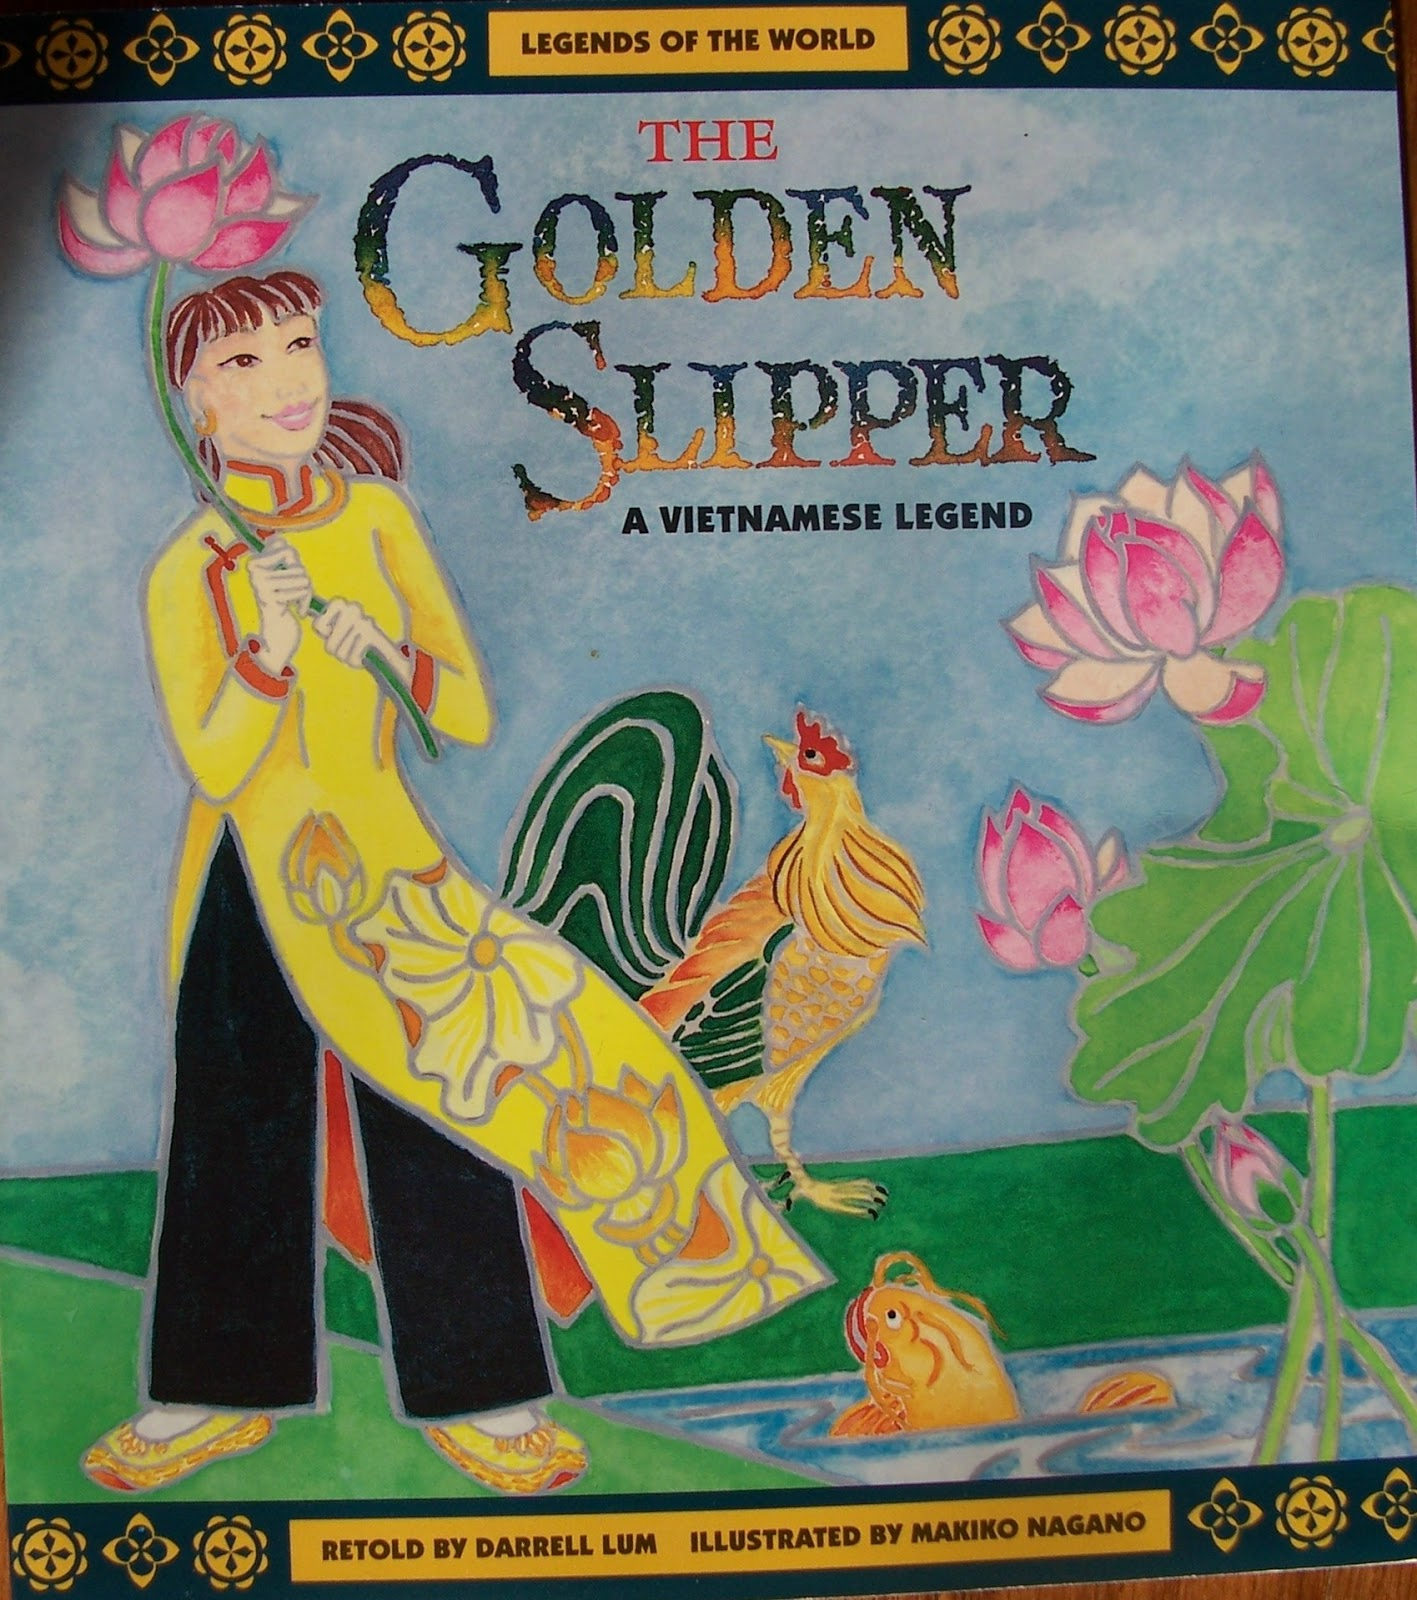 http://craftymomsshare.blogspot.com/2013/01/the-golden-slipper-vietnamese-cinderella.html